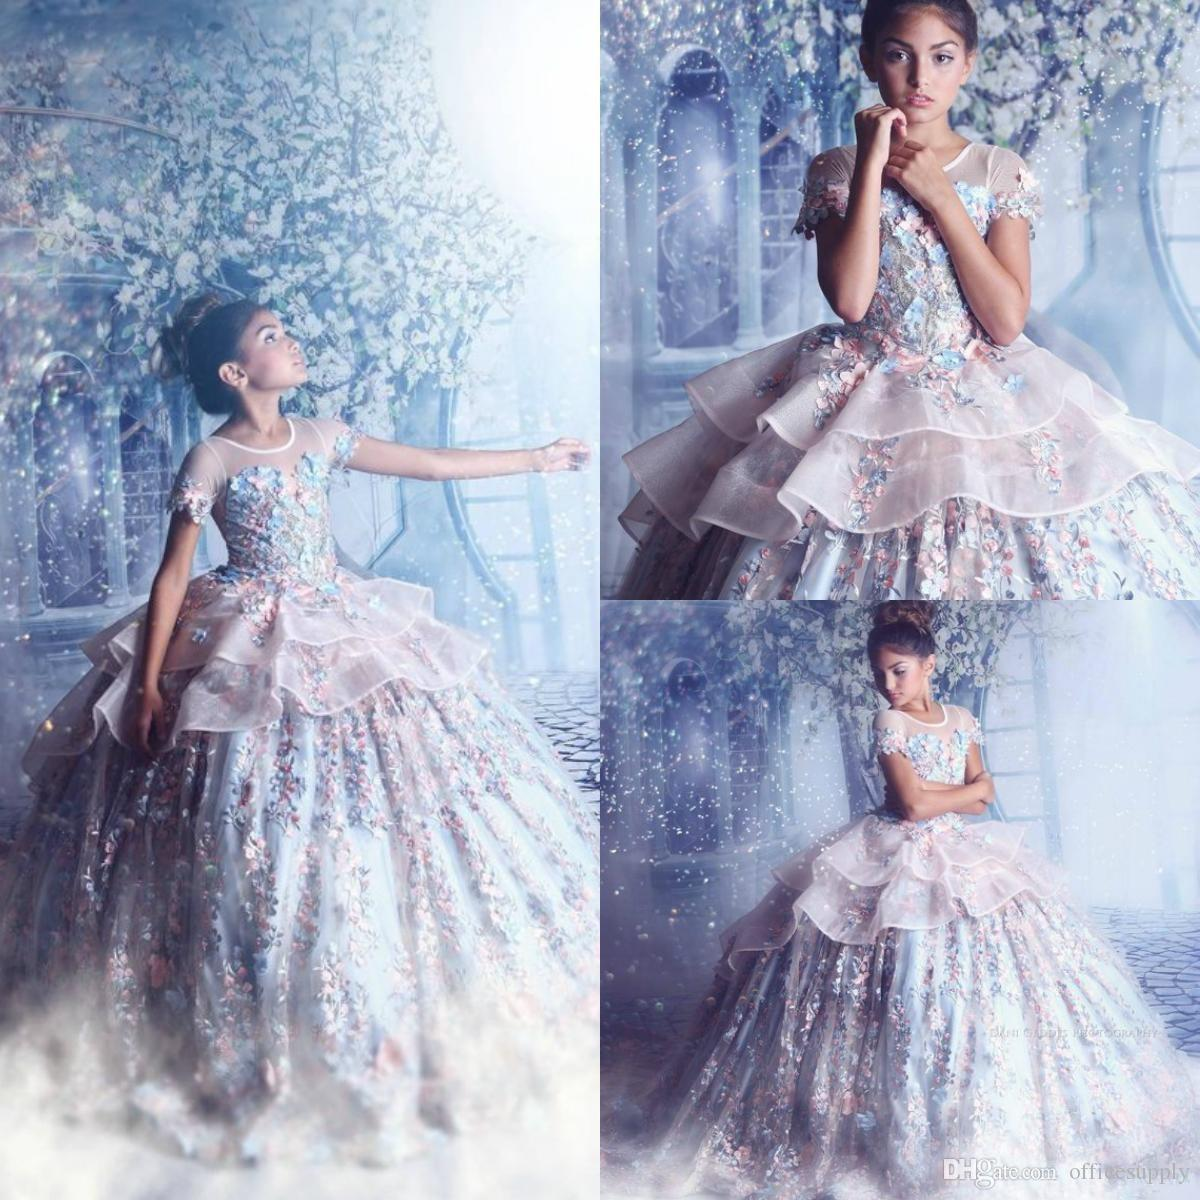 Princess Flowers Little Girls Pageant Dresses Couture Ball Gown Beads Applique Teen Prom Gowns For Wedding Party Dress